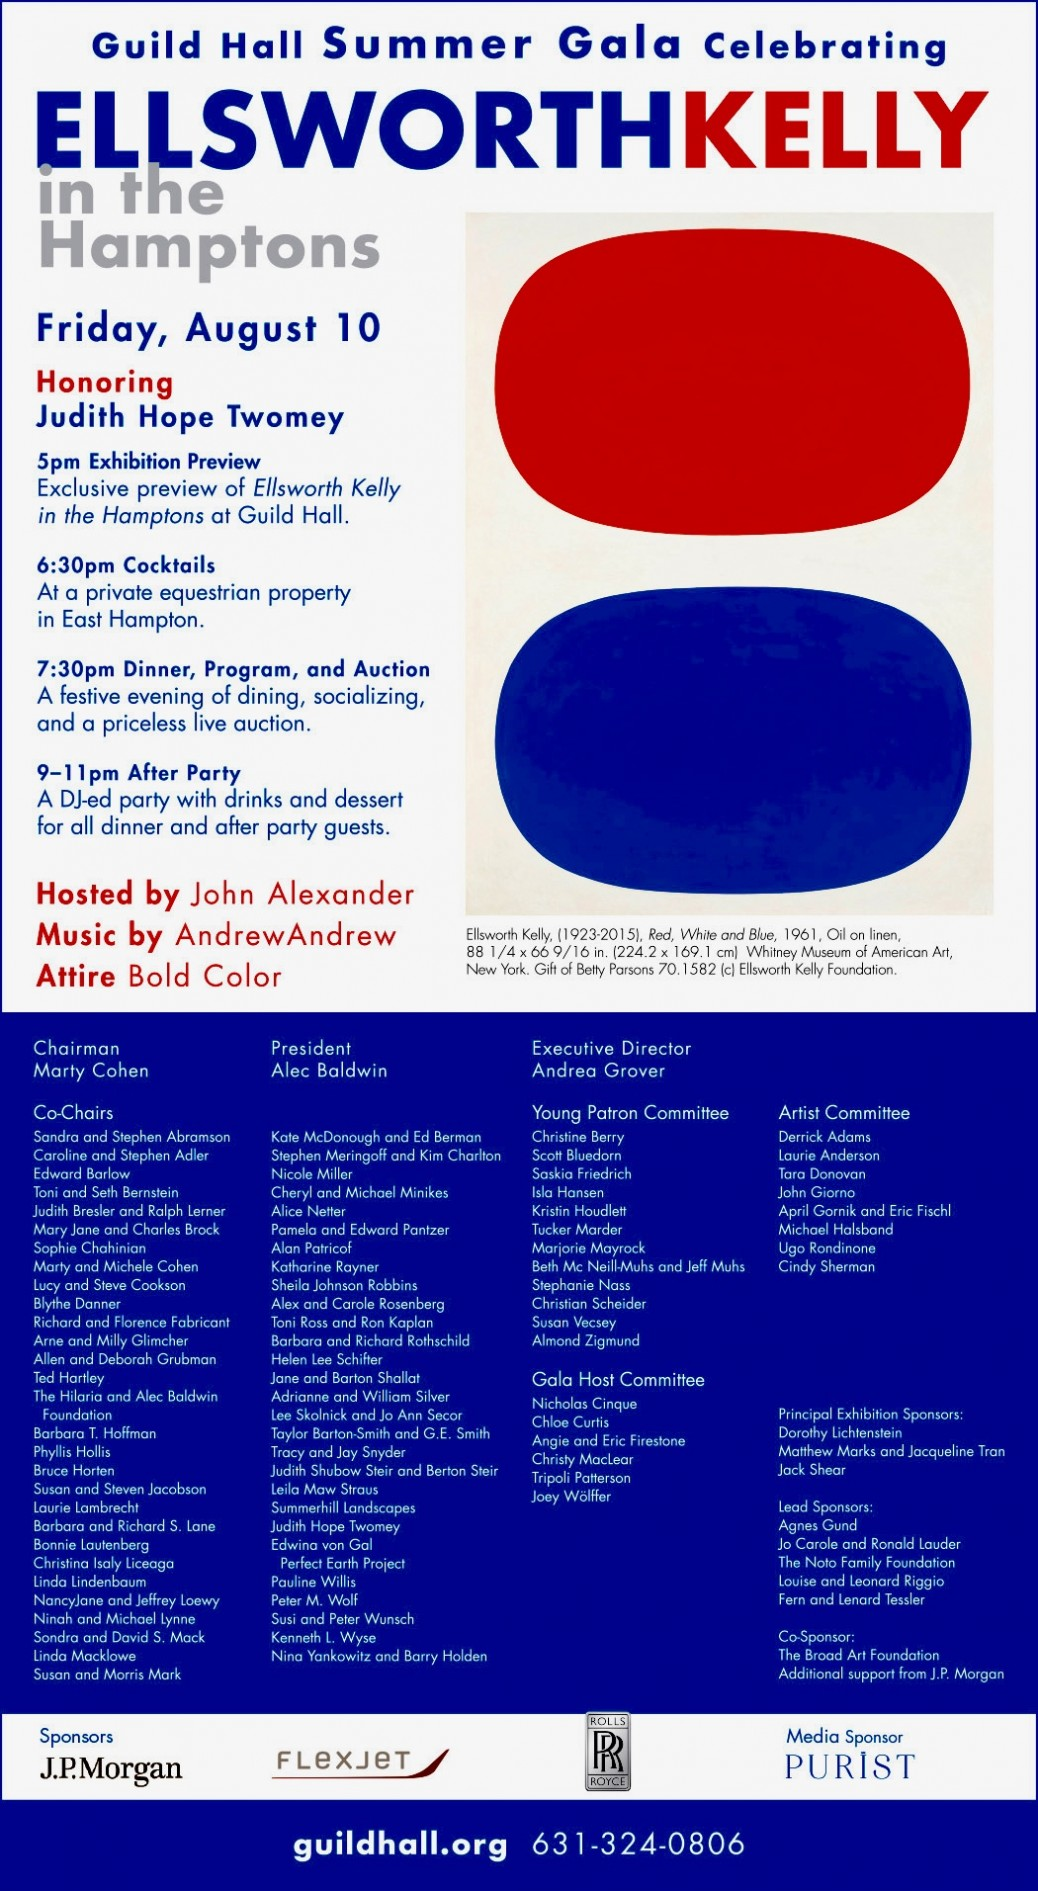 East Hampton Guild Hall Summer Gala: Ellsworth Kelly. August 10